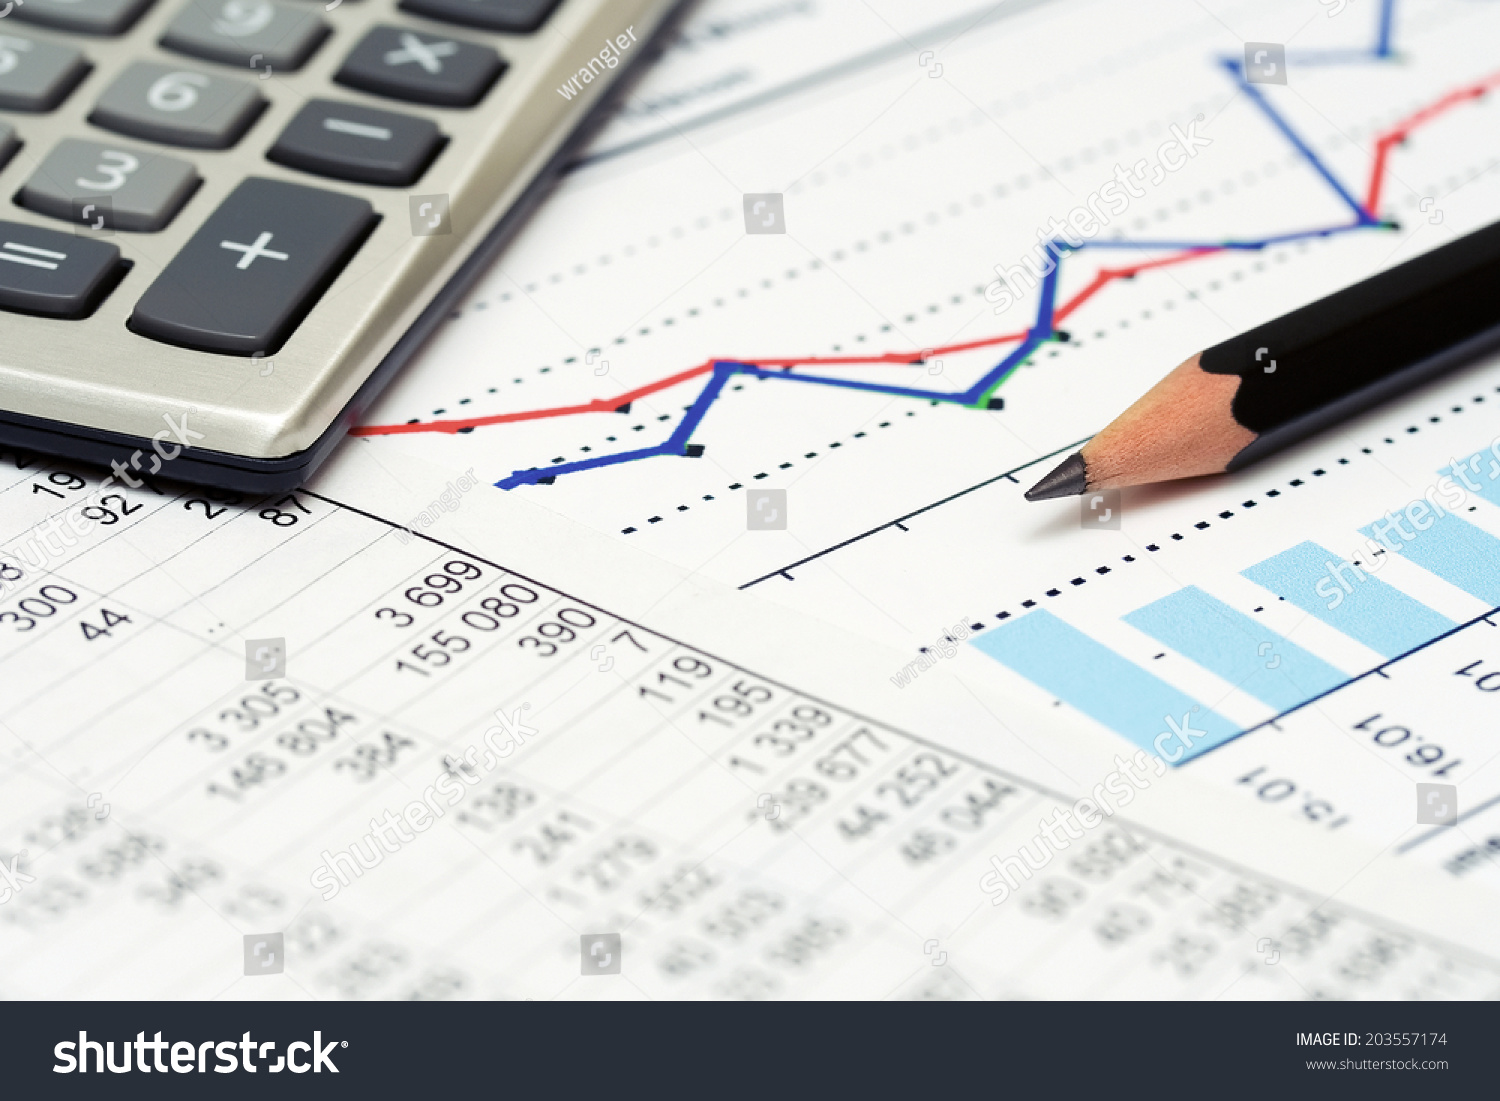 financial accounting interpretation Accounting and financial statements finance and capital markets accounting and financial statements lessons cash versus accrual accounting comparing accrual and cash accounting three core financial statements learn balance sheet and income statement relationship.